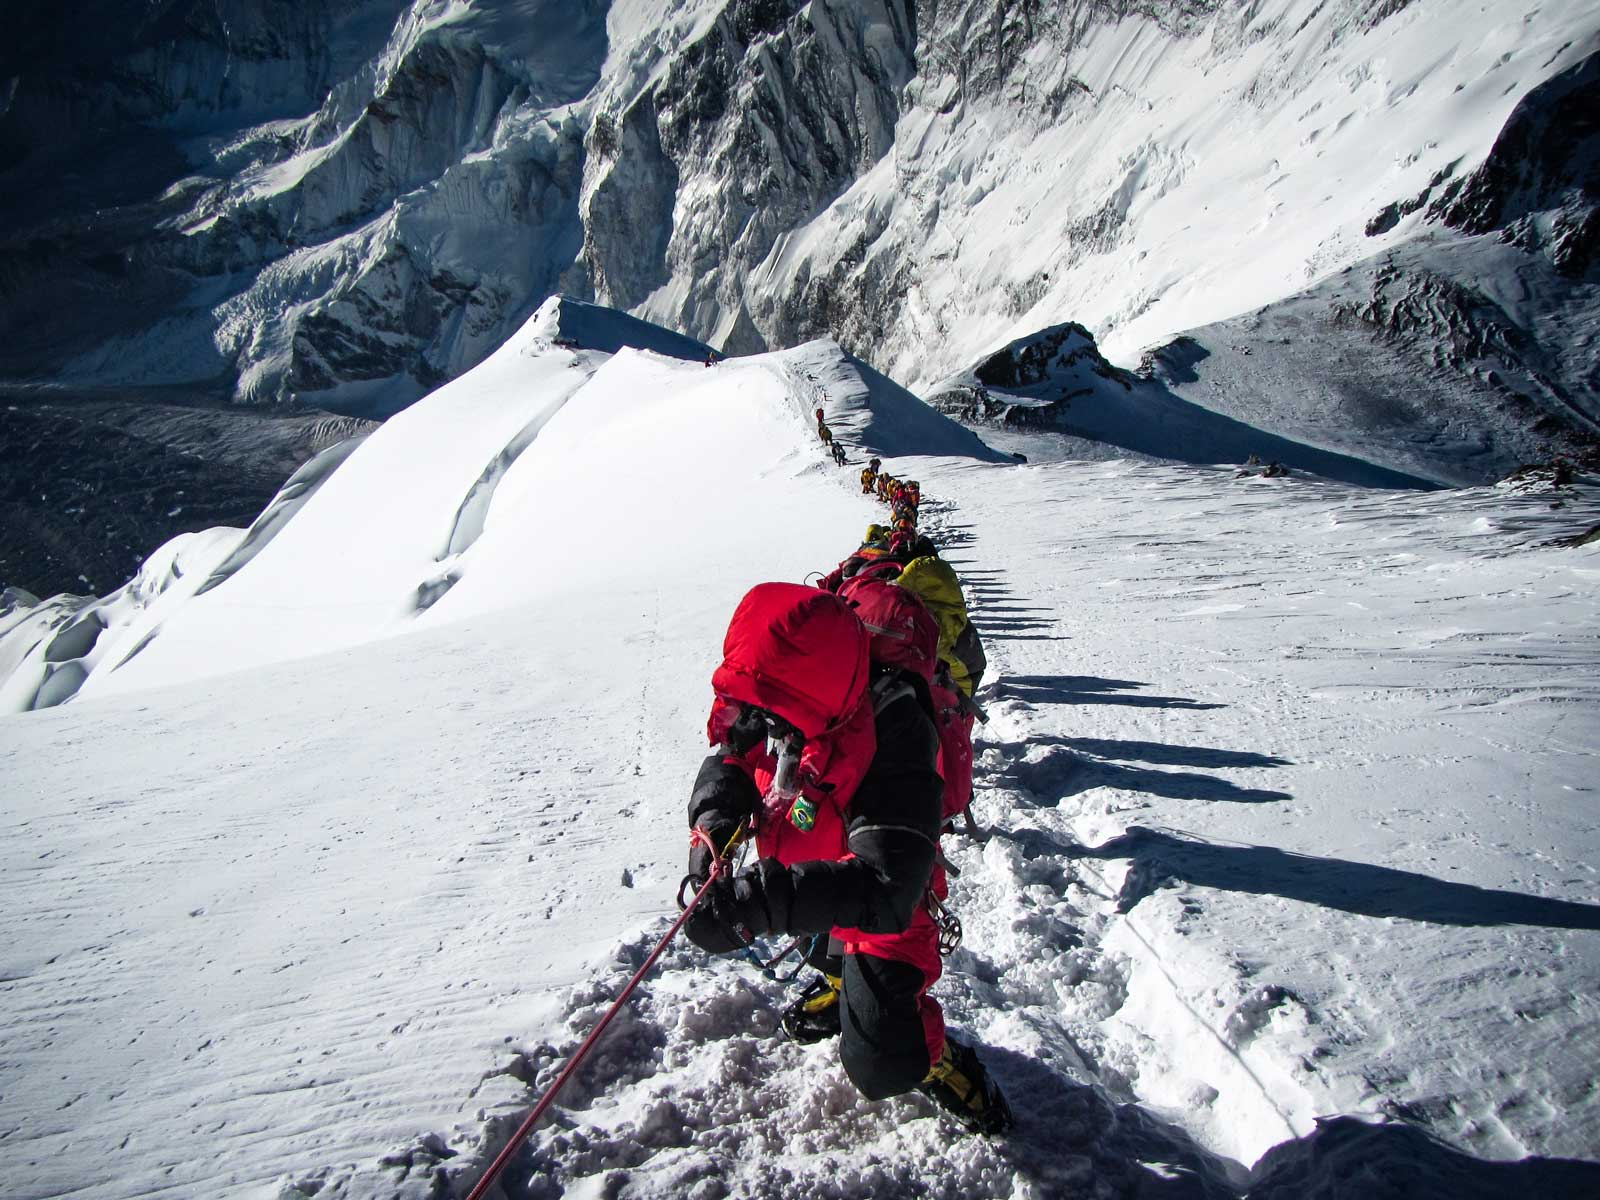 South West Ridge of Everest, Looking down to the South Col